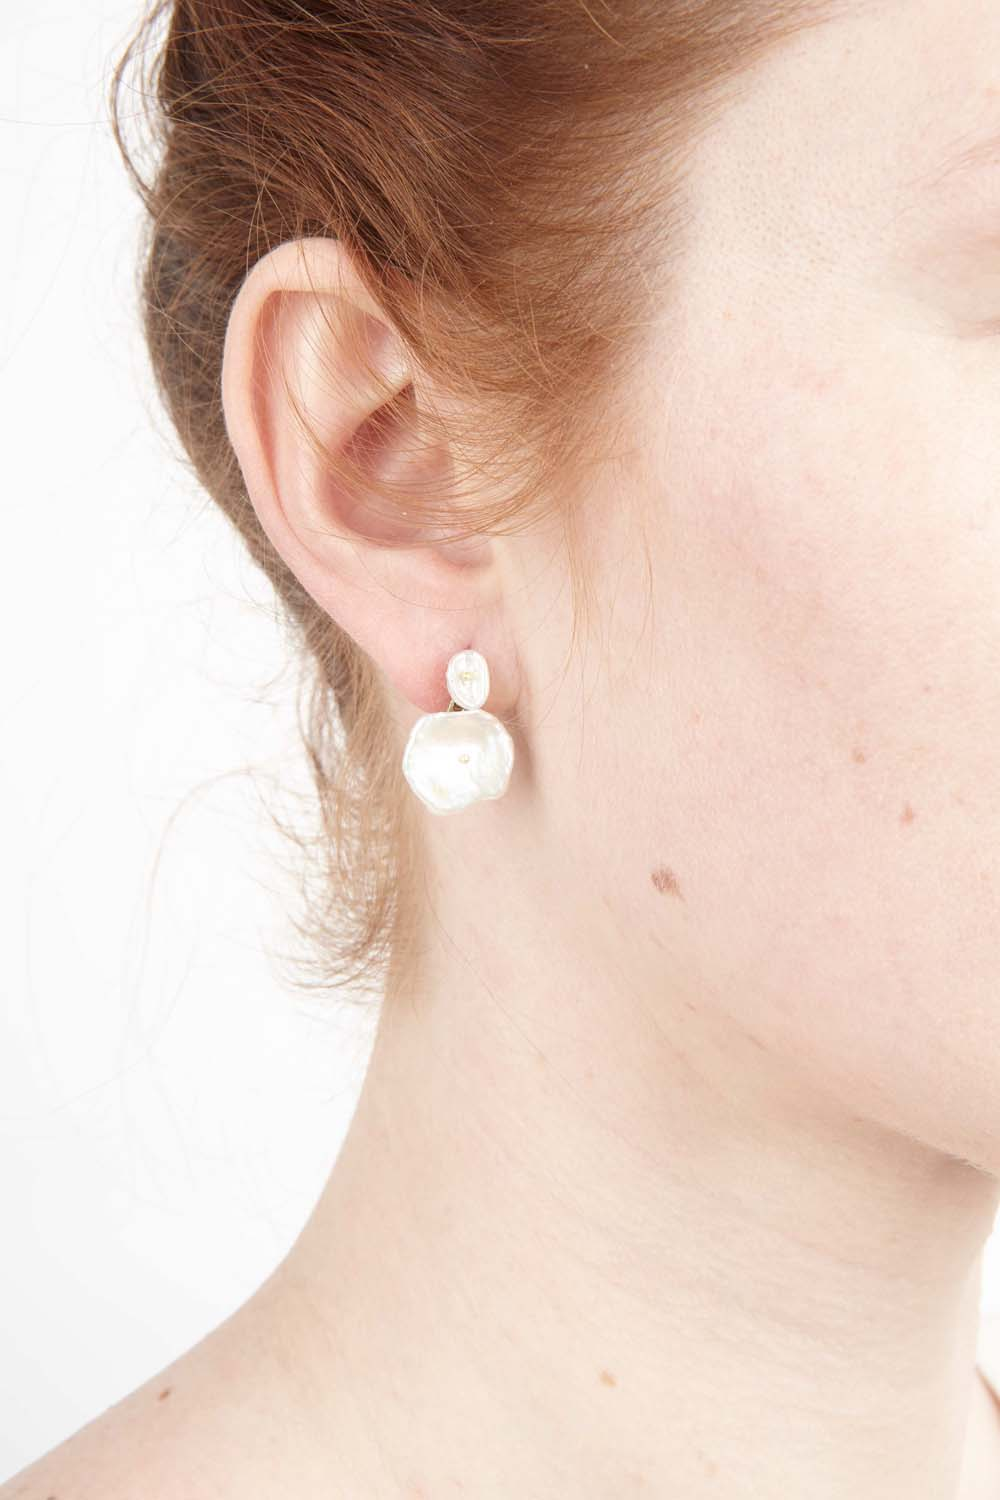 Silver Dollar Earrings - Post